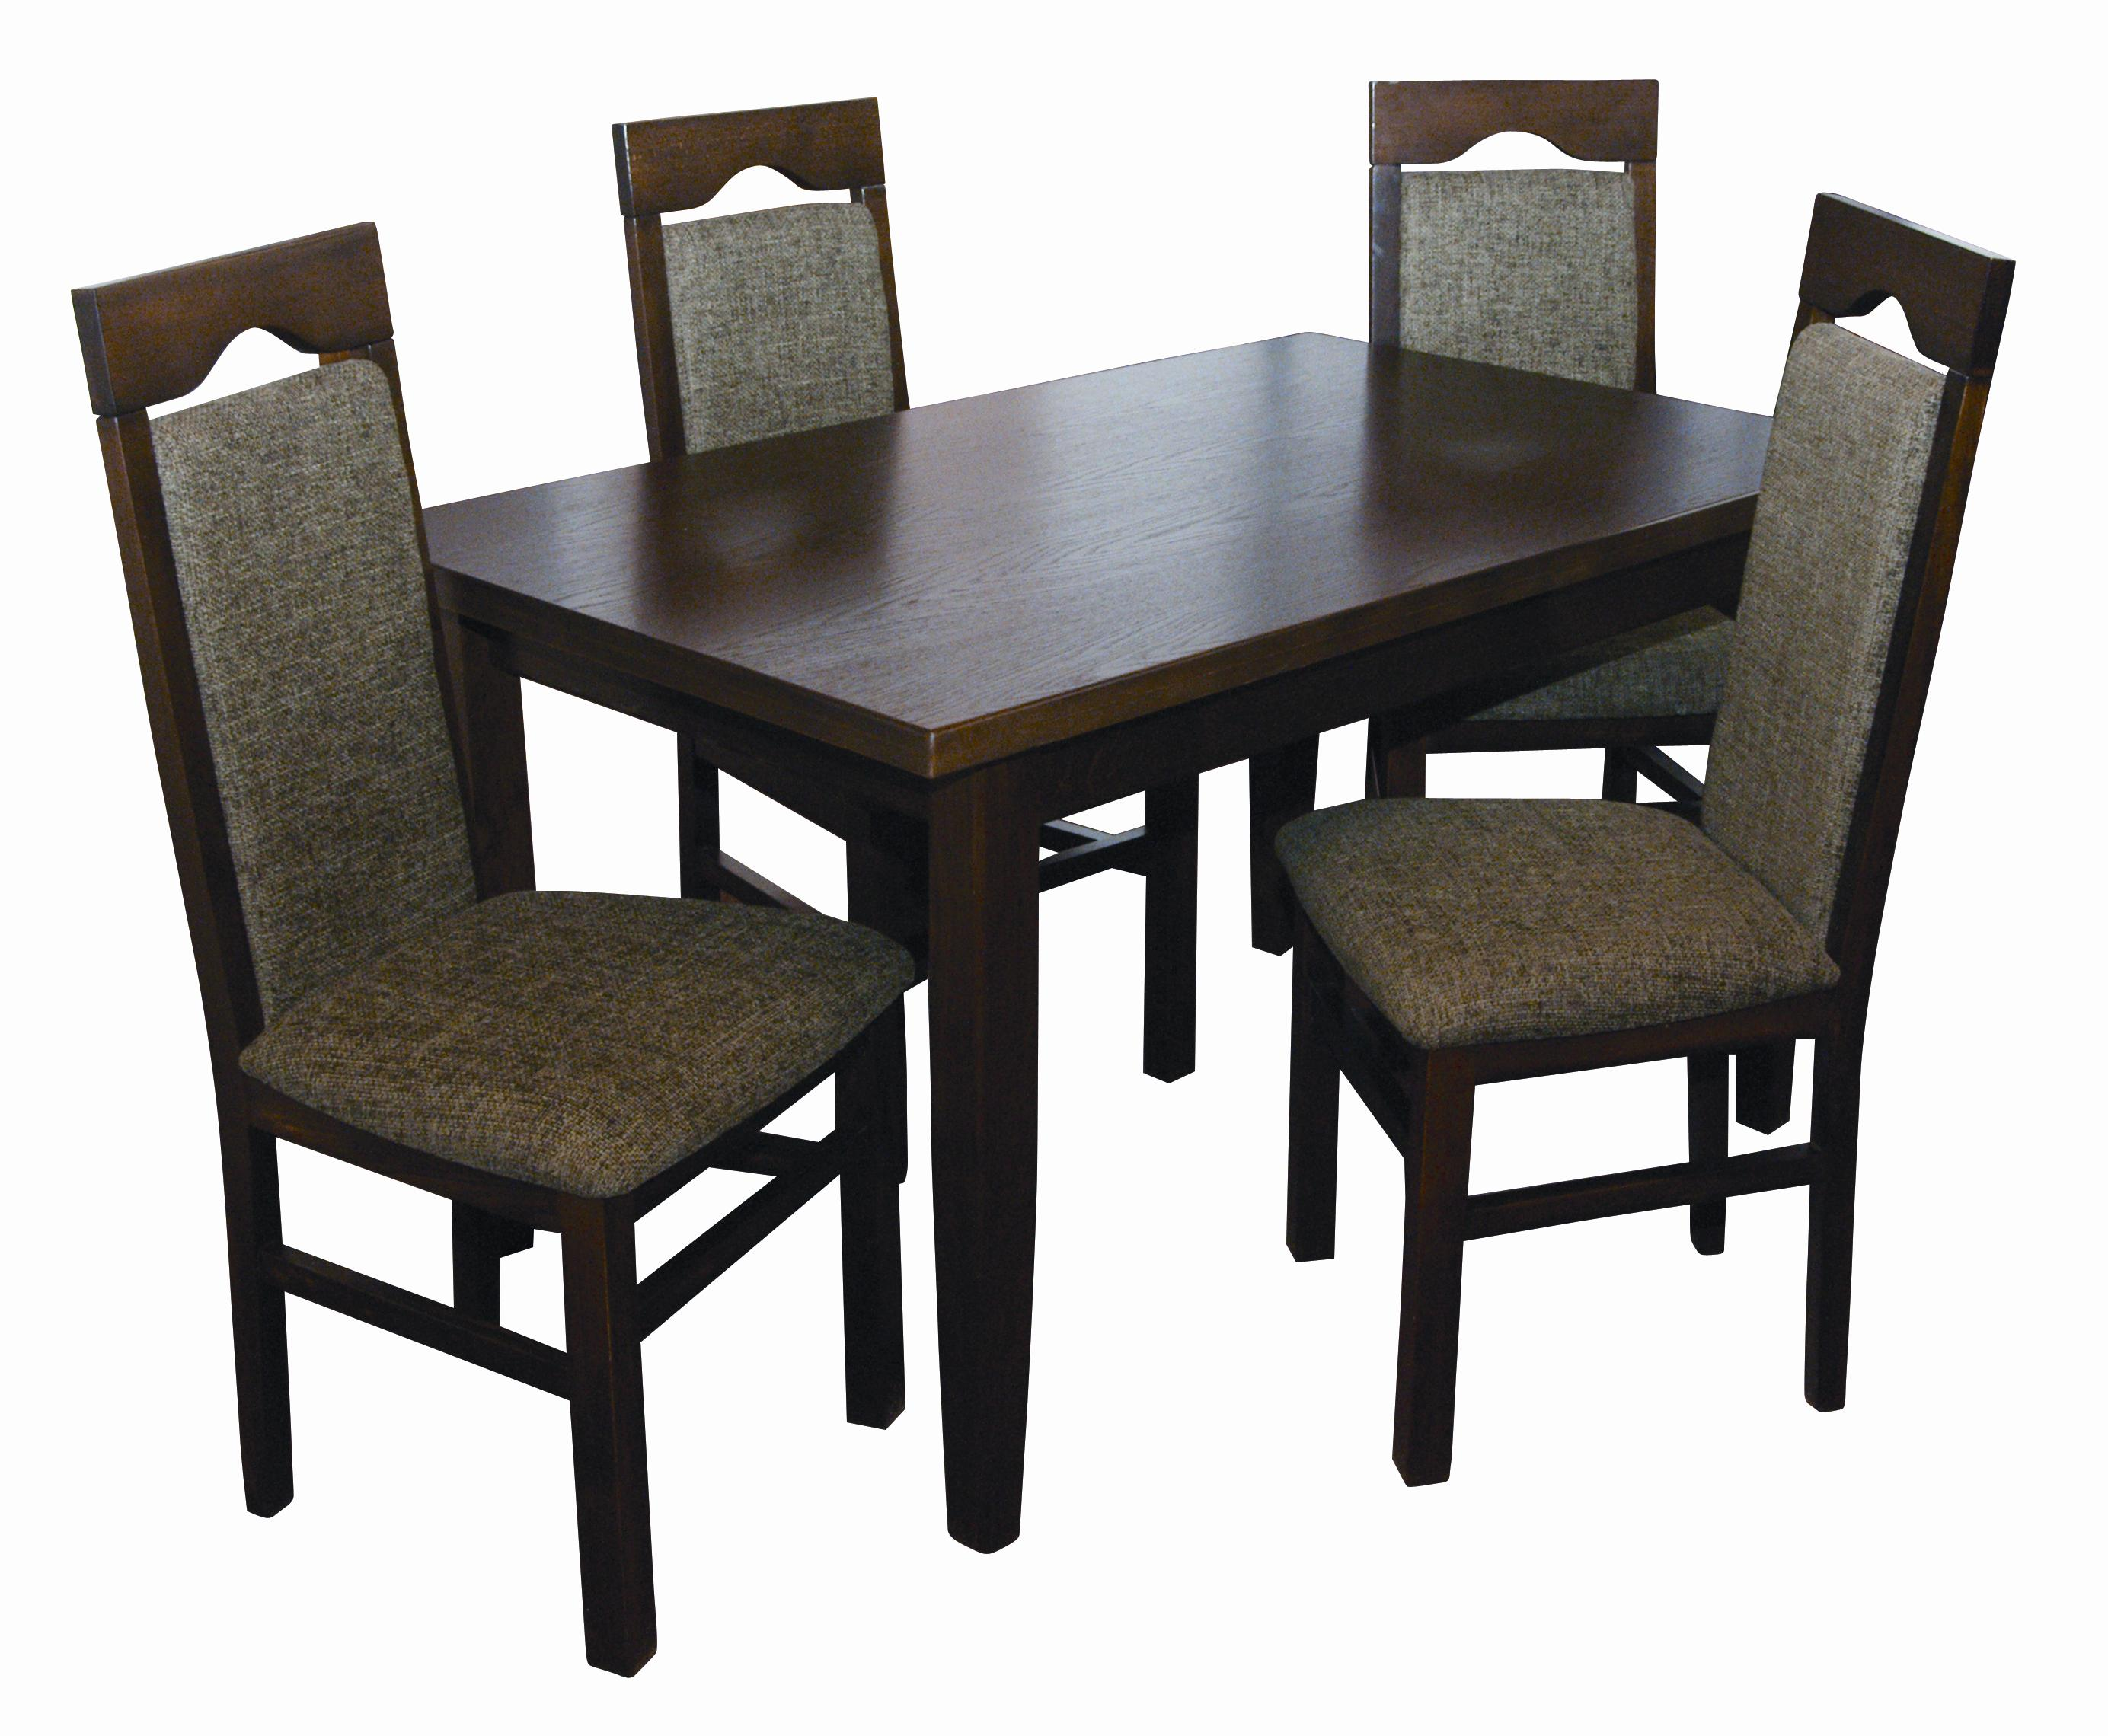 Restaurant chairs design 0 0 2000 0 pieces for Restaurant furniture